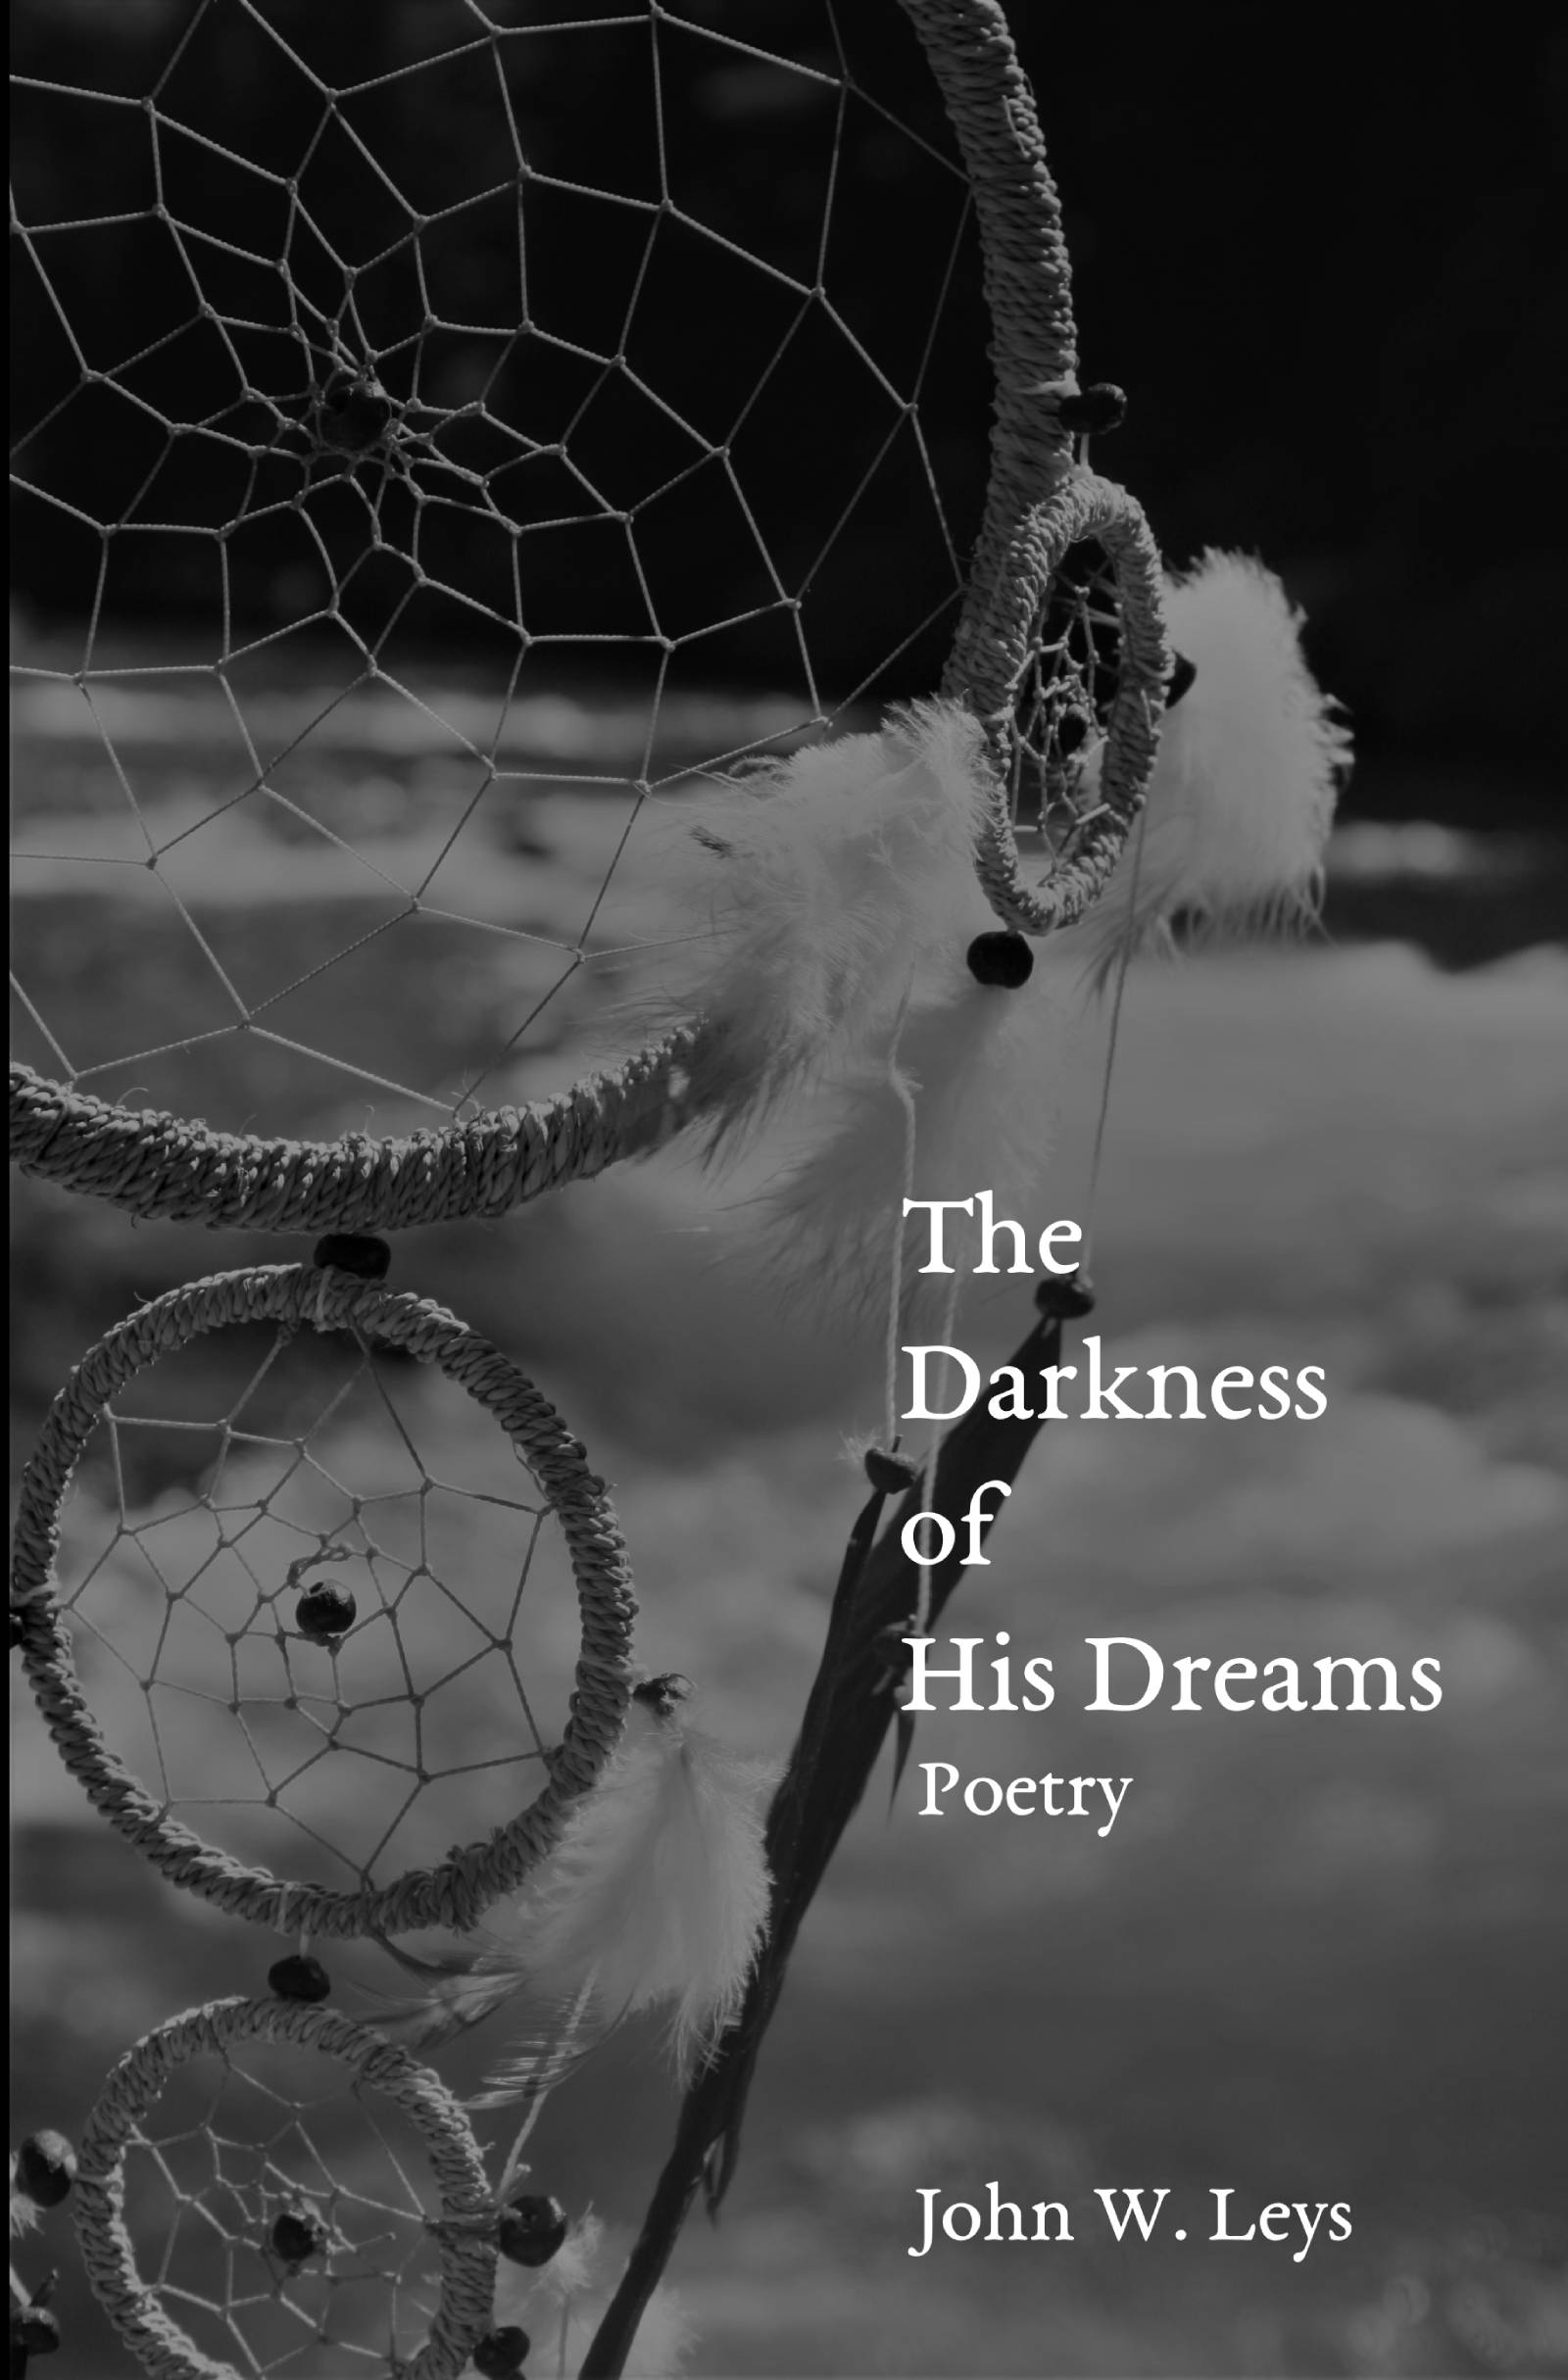 The Darkness of His Dreams: Poetry by John W. Leys